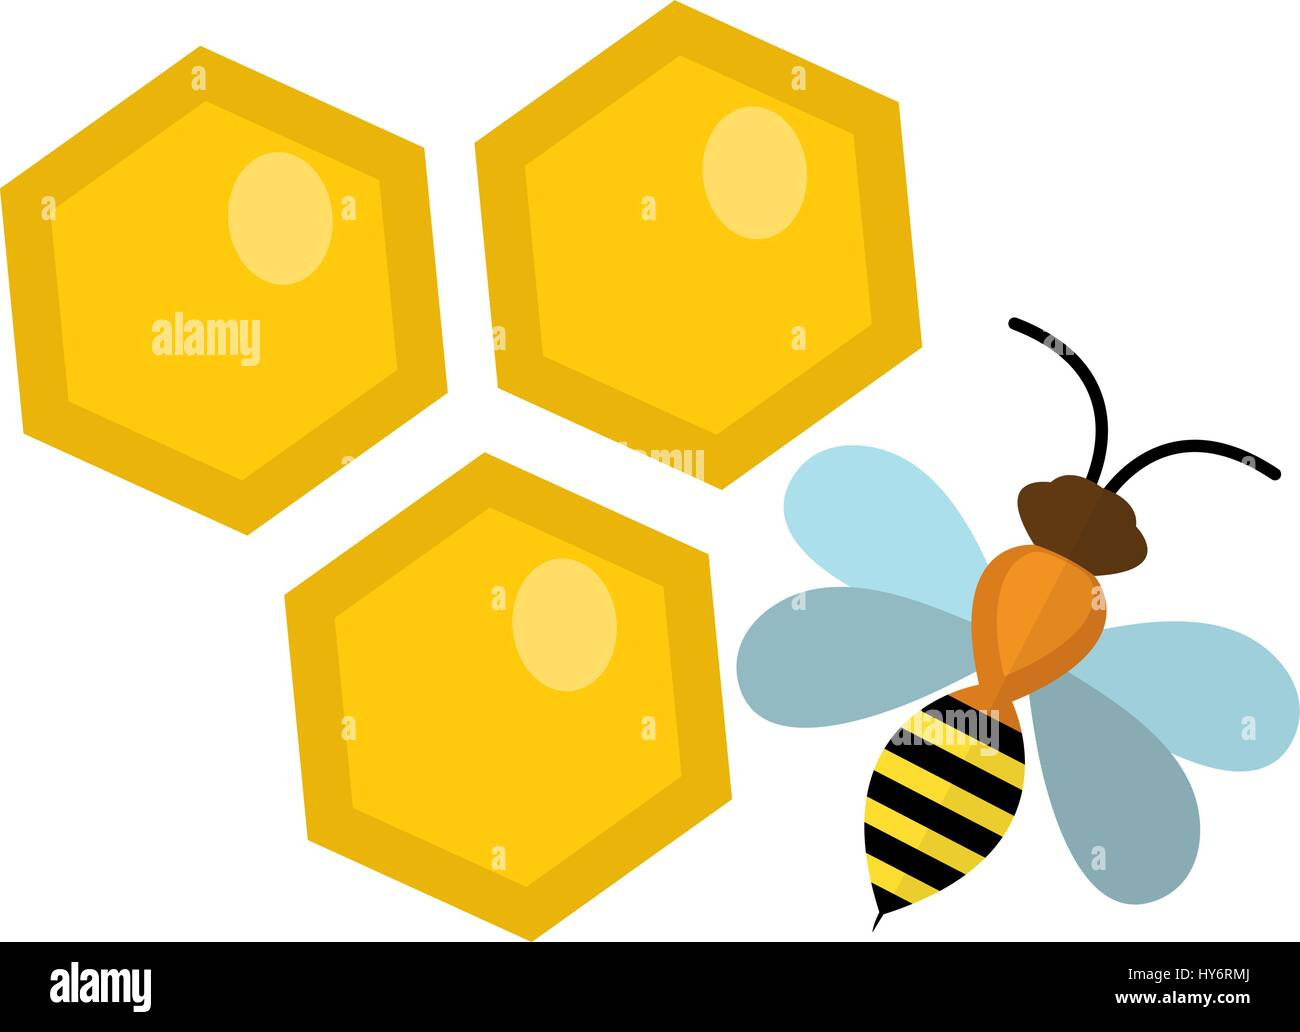 Honeycomb and bee icon, flat style. Isolated on white background. Vector illustration, clip-art. - Stock Vector